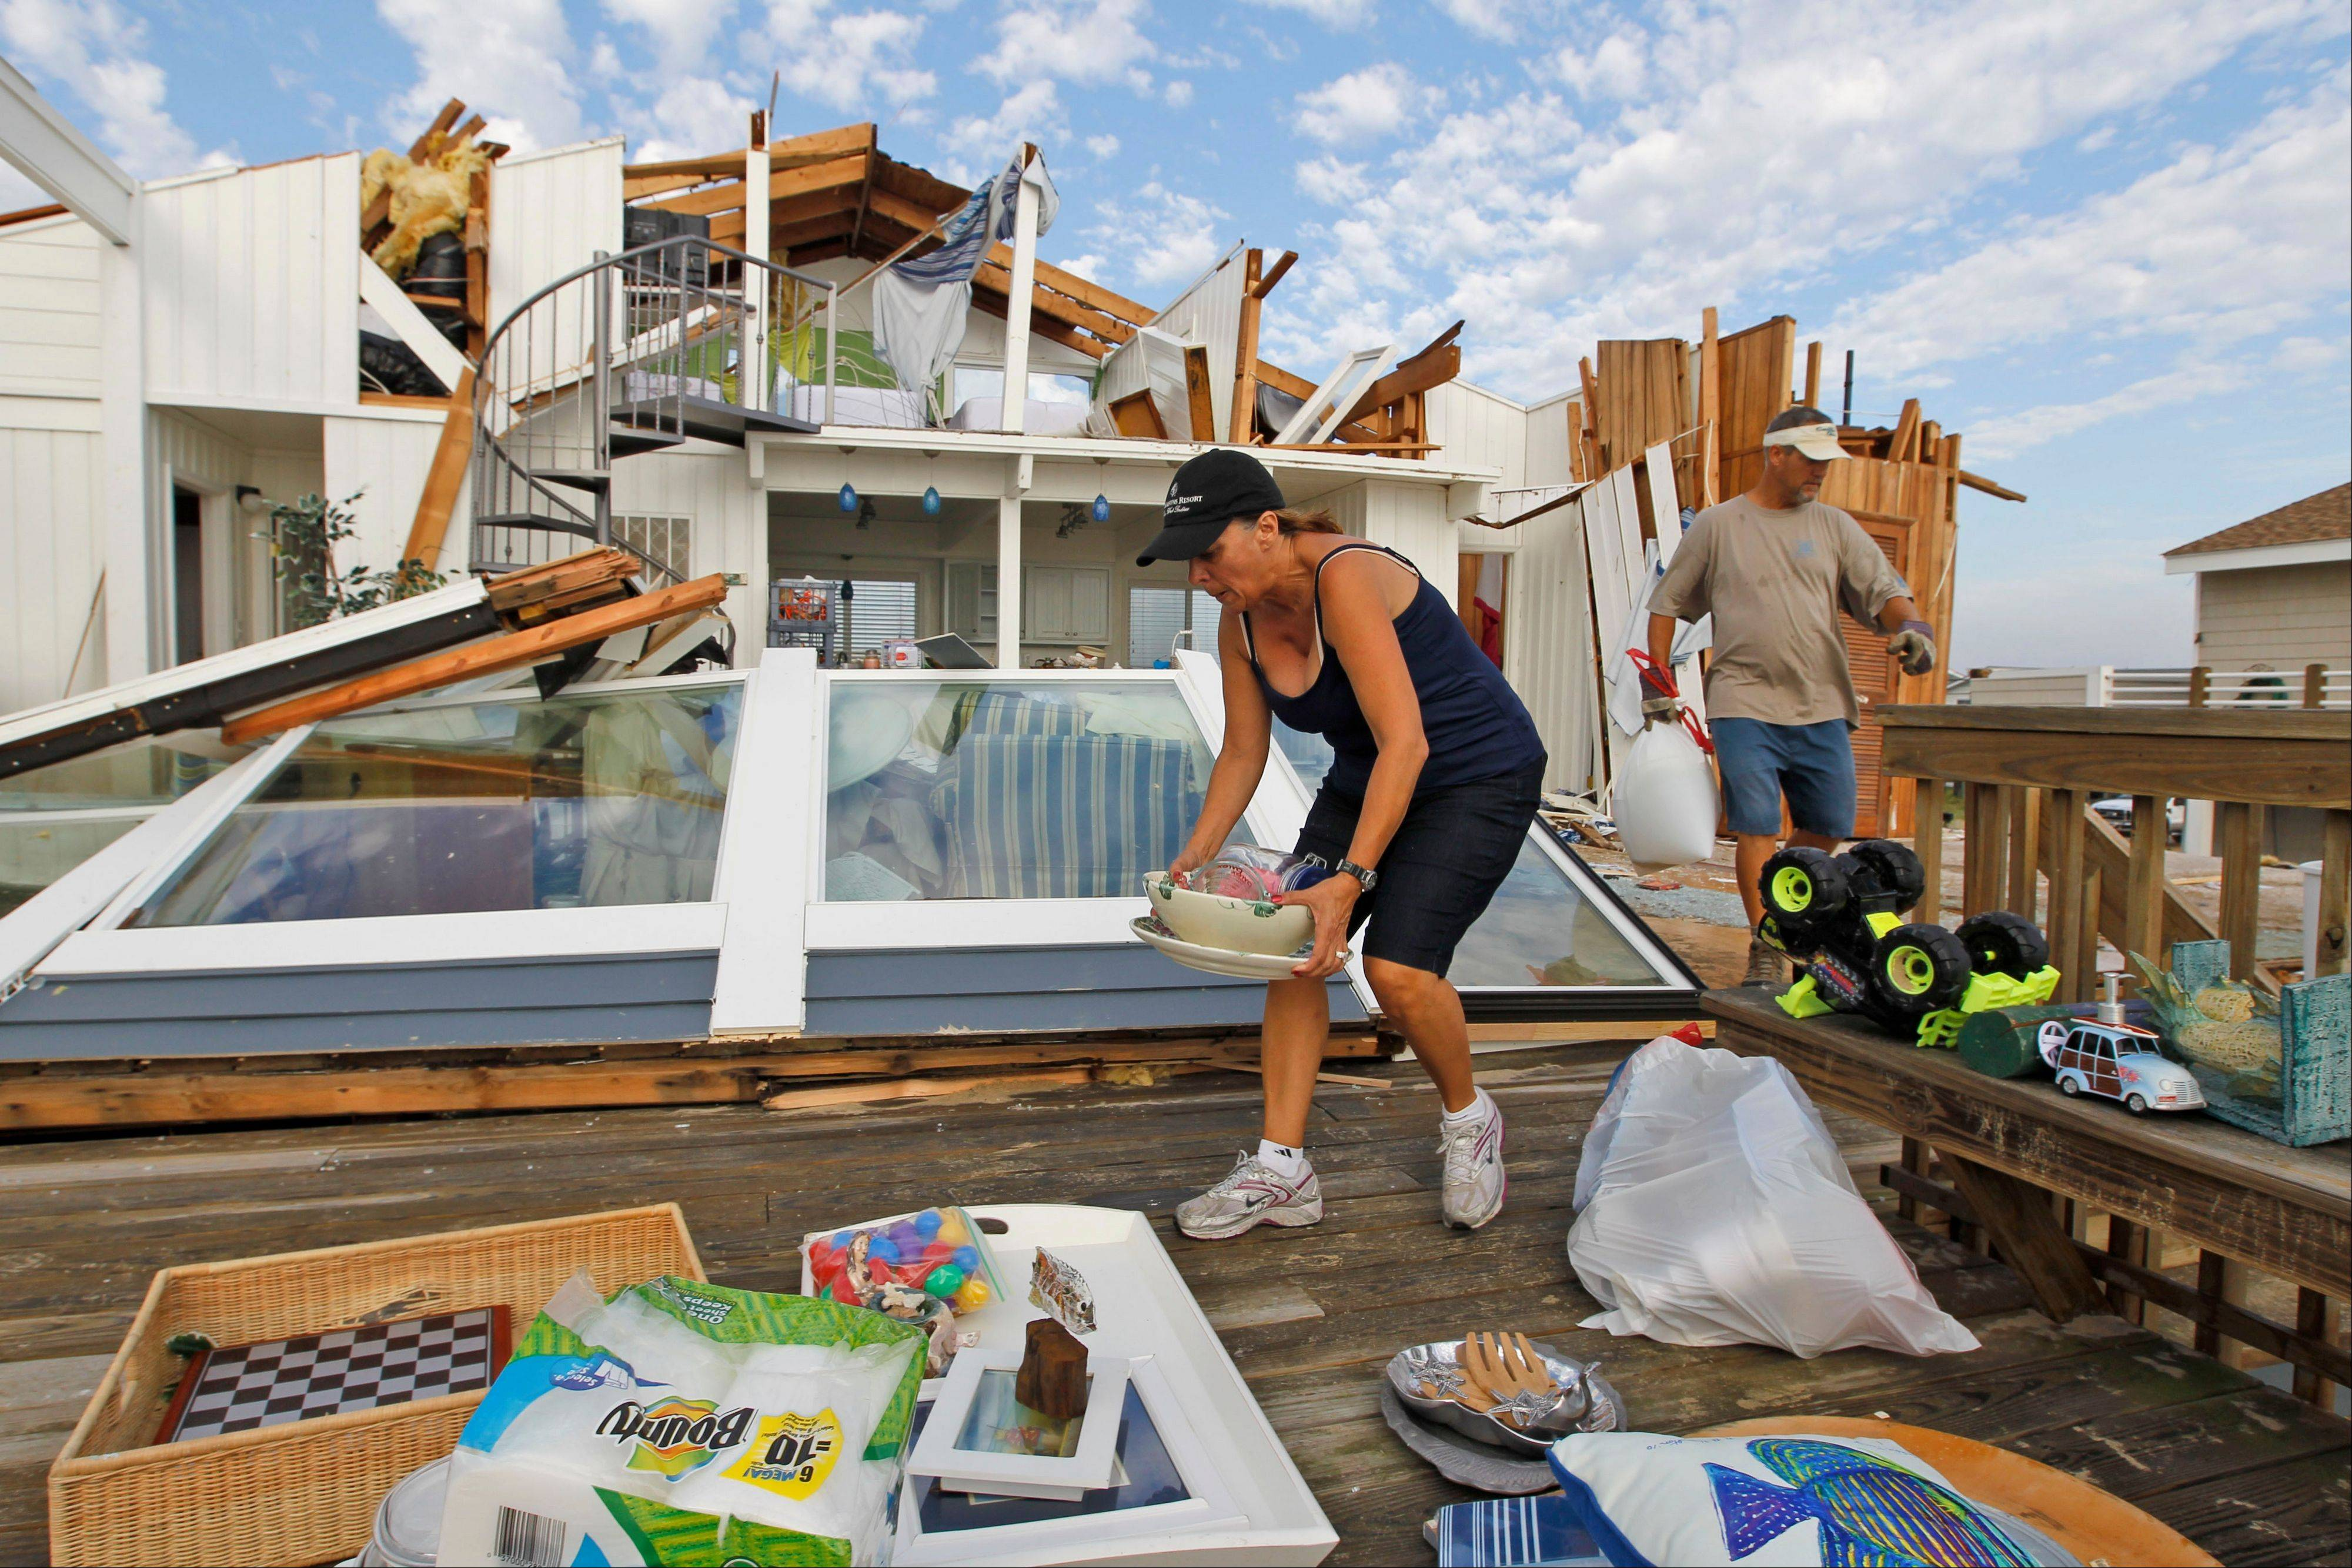 Denise Robinson, left, and Rich Brown, clear out belongings from her severely storm-damaged beach home in the Sandbridge area of Virginia Beach, Va., after Hurricane Irene hit the region, Sunday, Aug. 28, 2011. Irene inflicted scattered damage over such a broad area that the total damage -- and costs involved -- were not yet known.